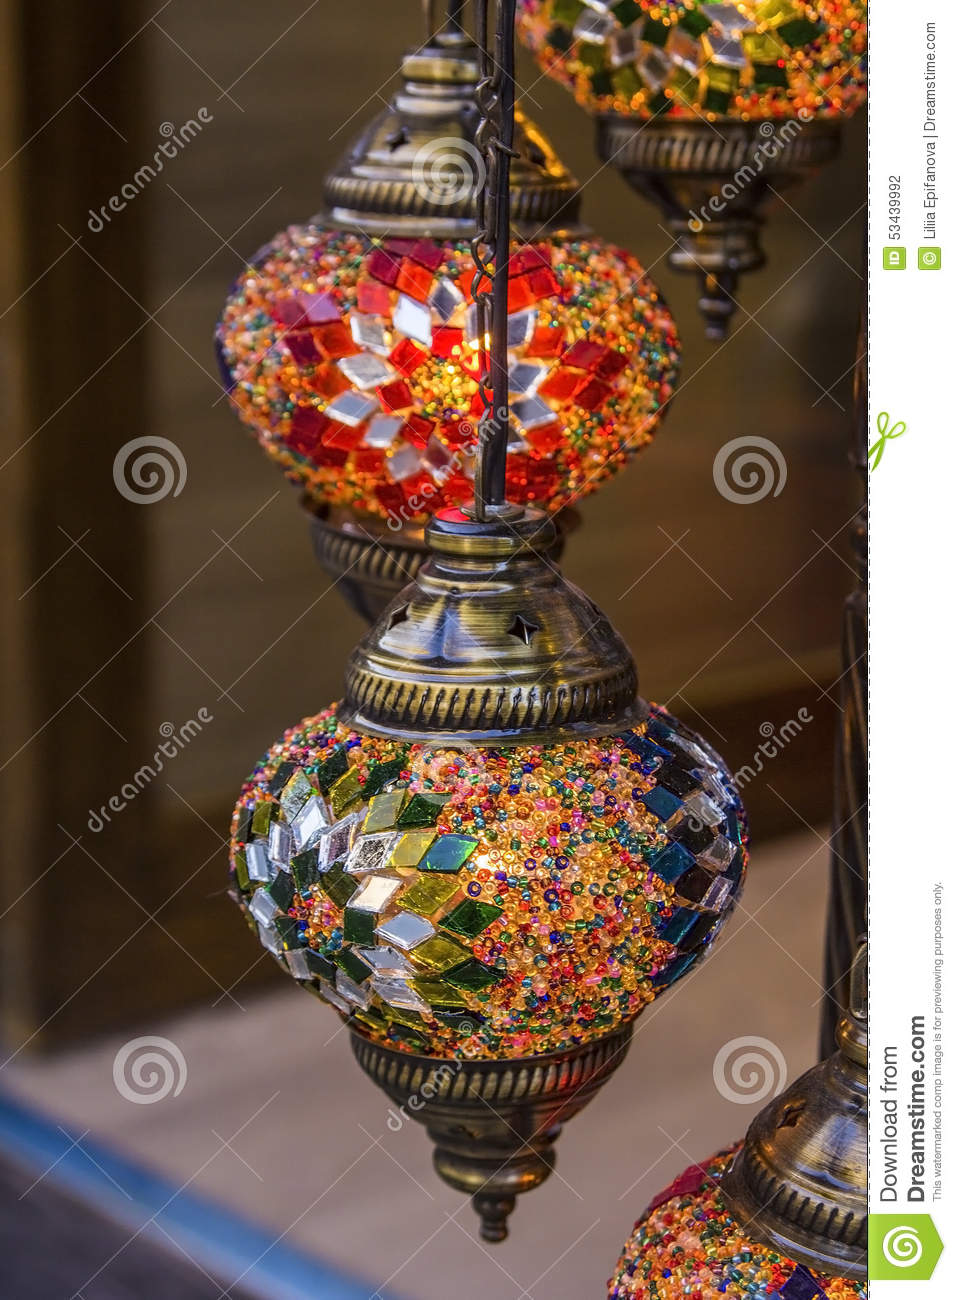 Turkish Decorative Lamps Of Glass Mosaics In The Bazaar ...